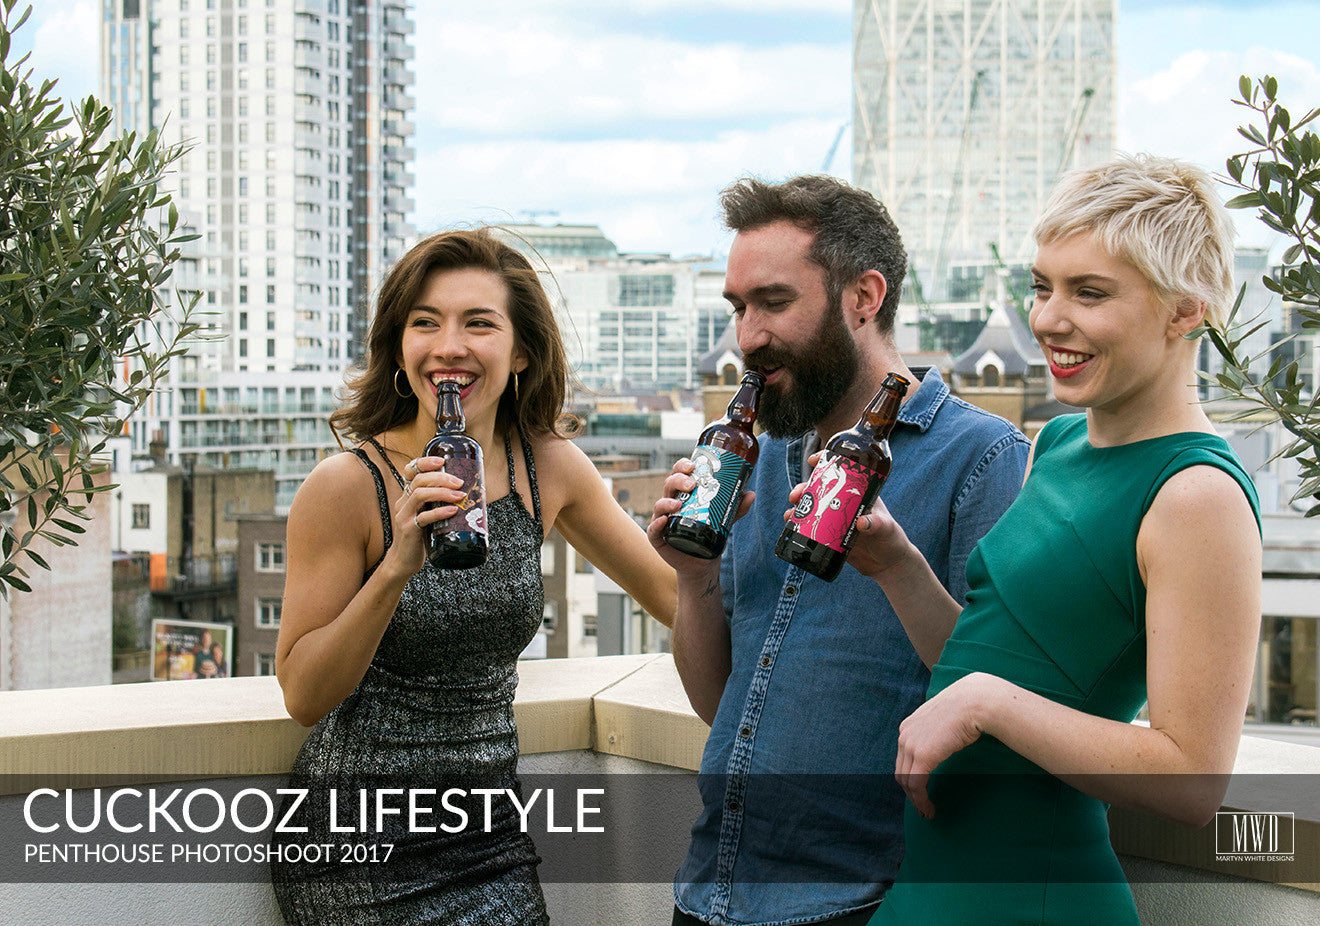 Cuckooz long stay serviced apartments London rooftop terrace